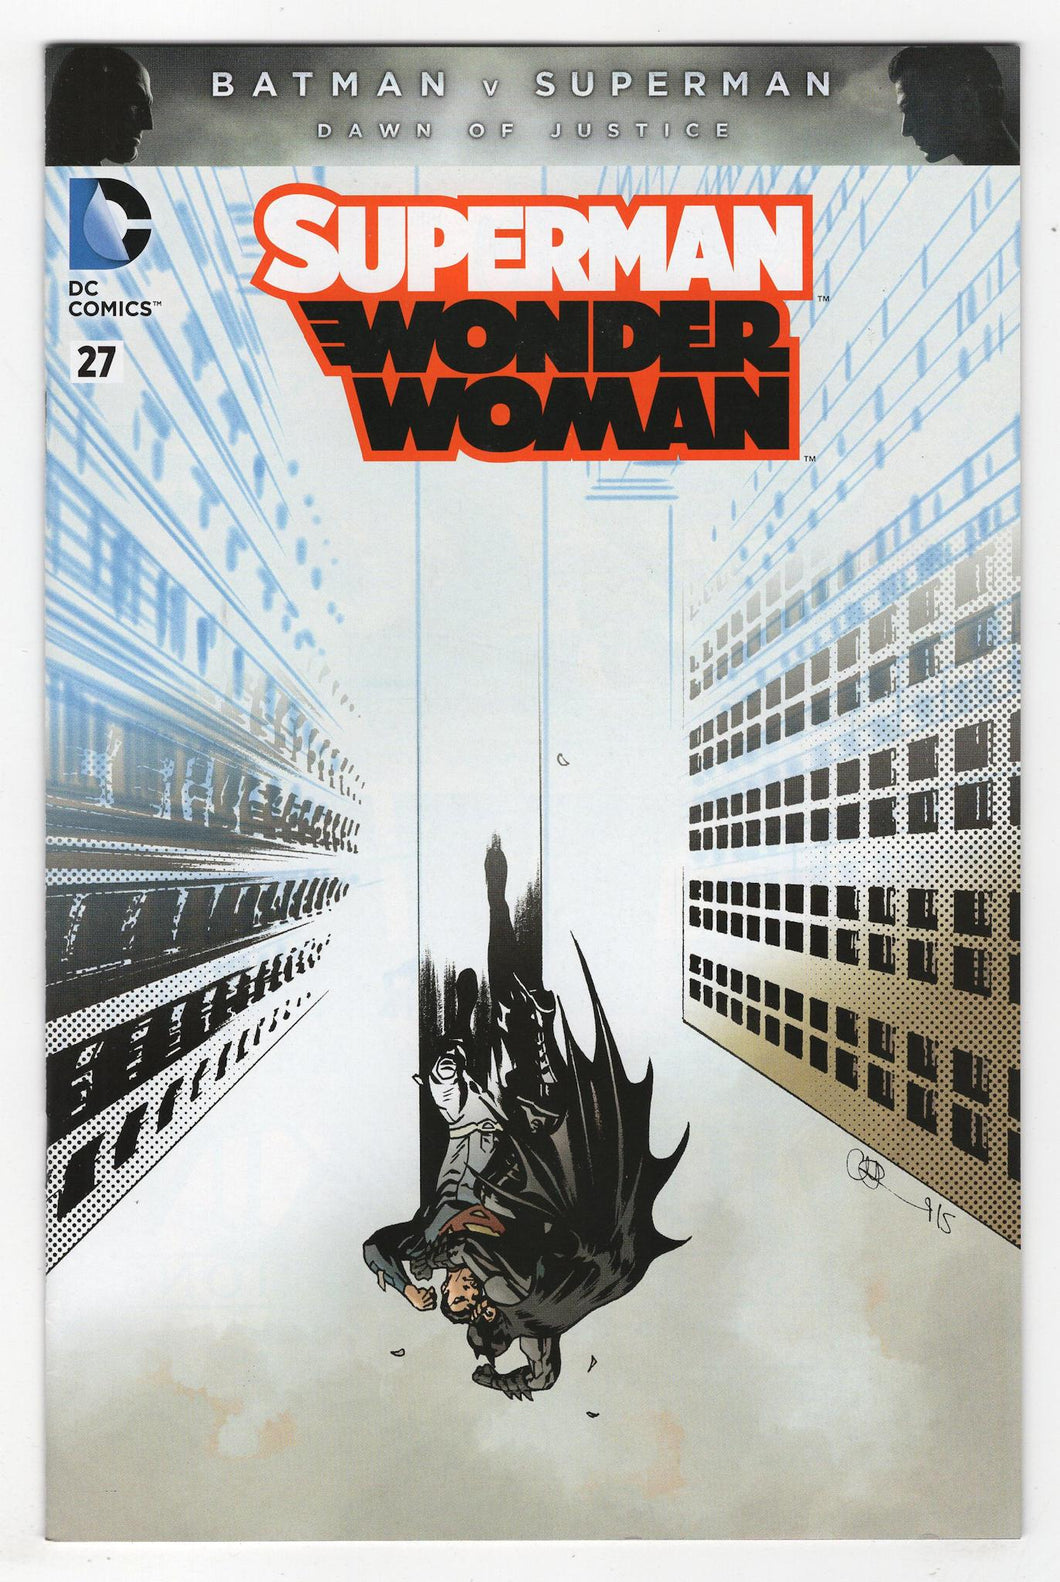 Superman Wonder Woman #27 Variant Cover Front